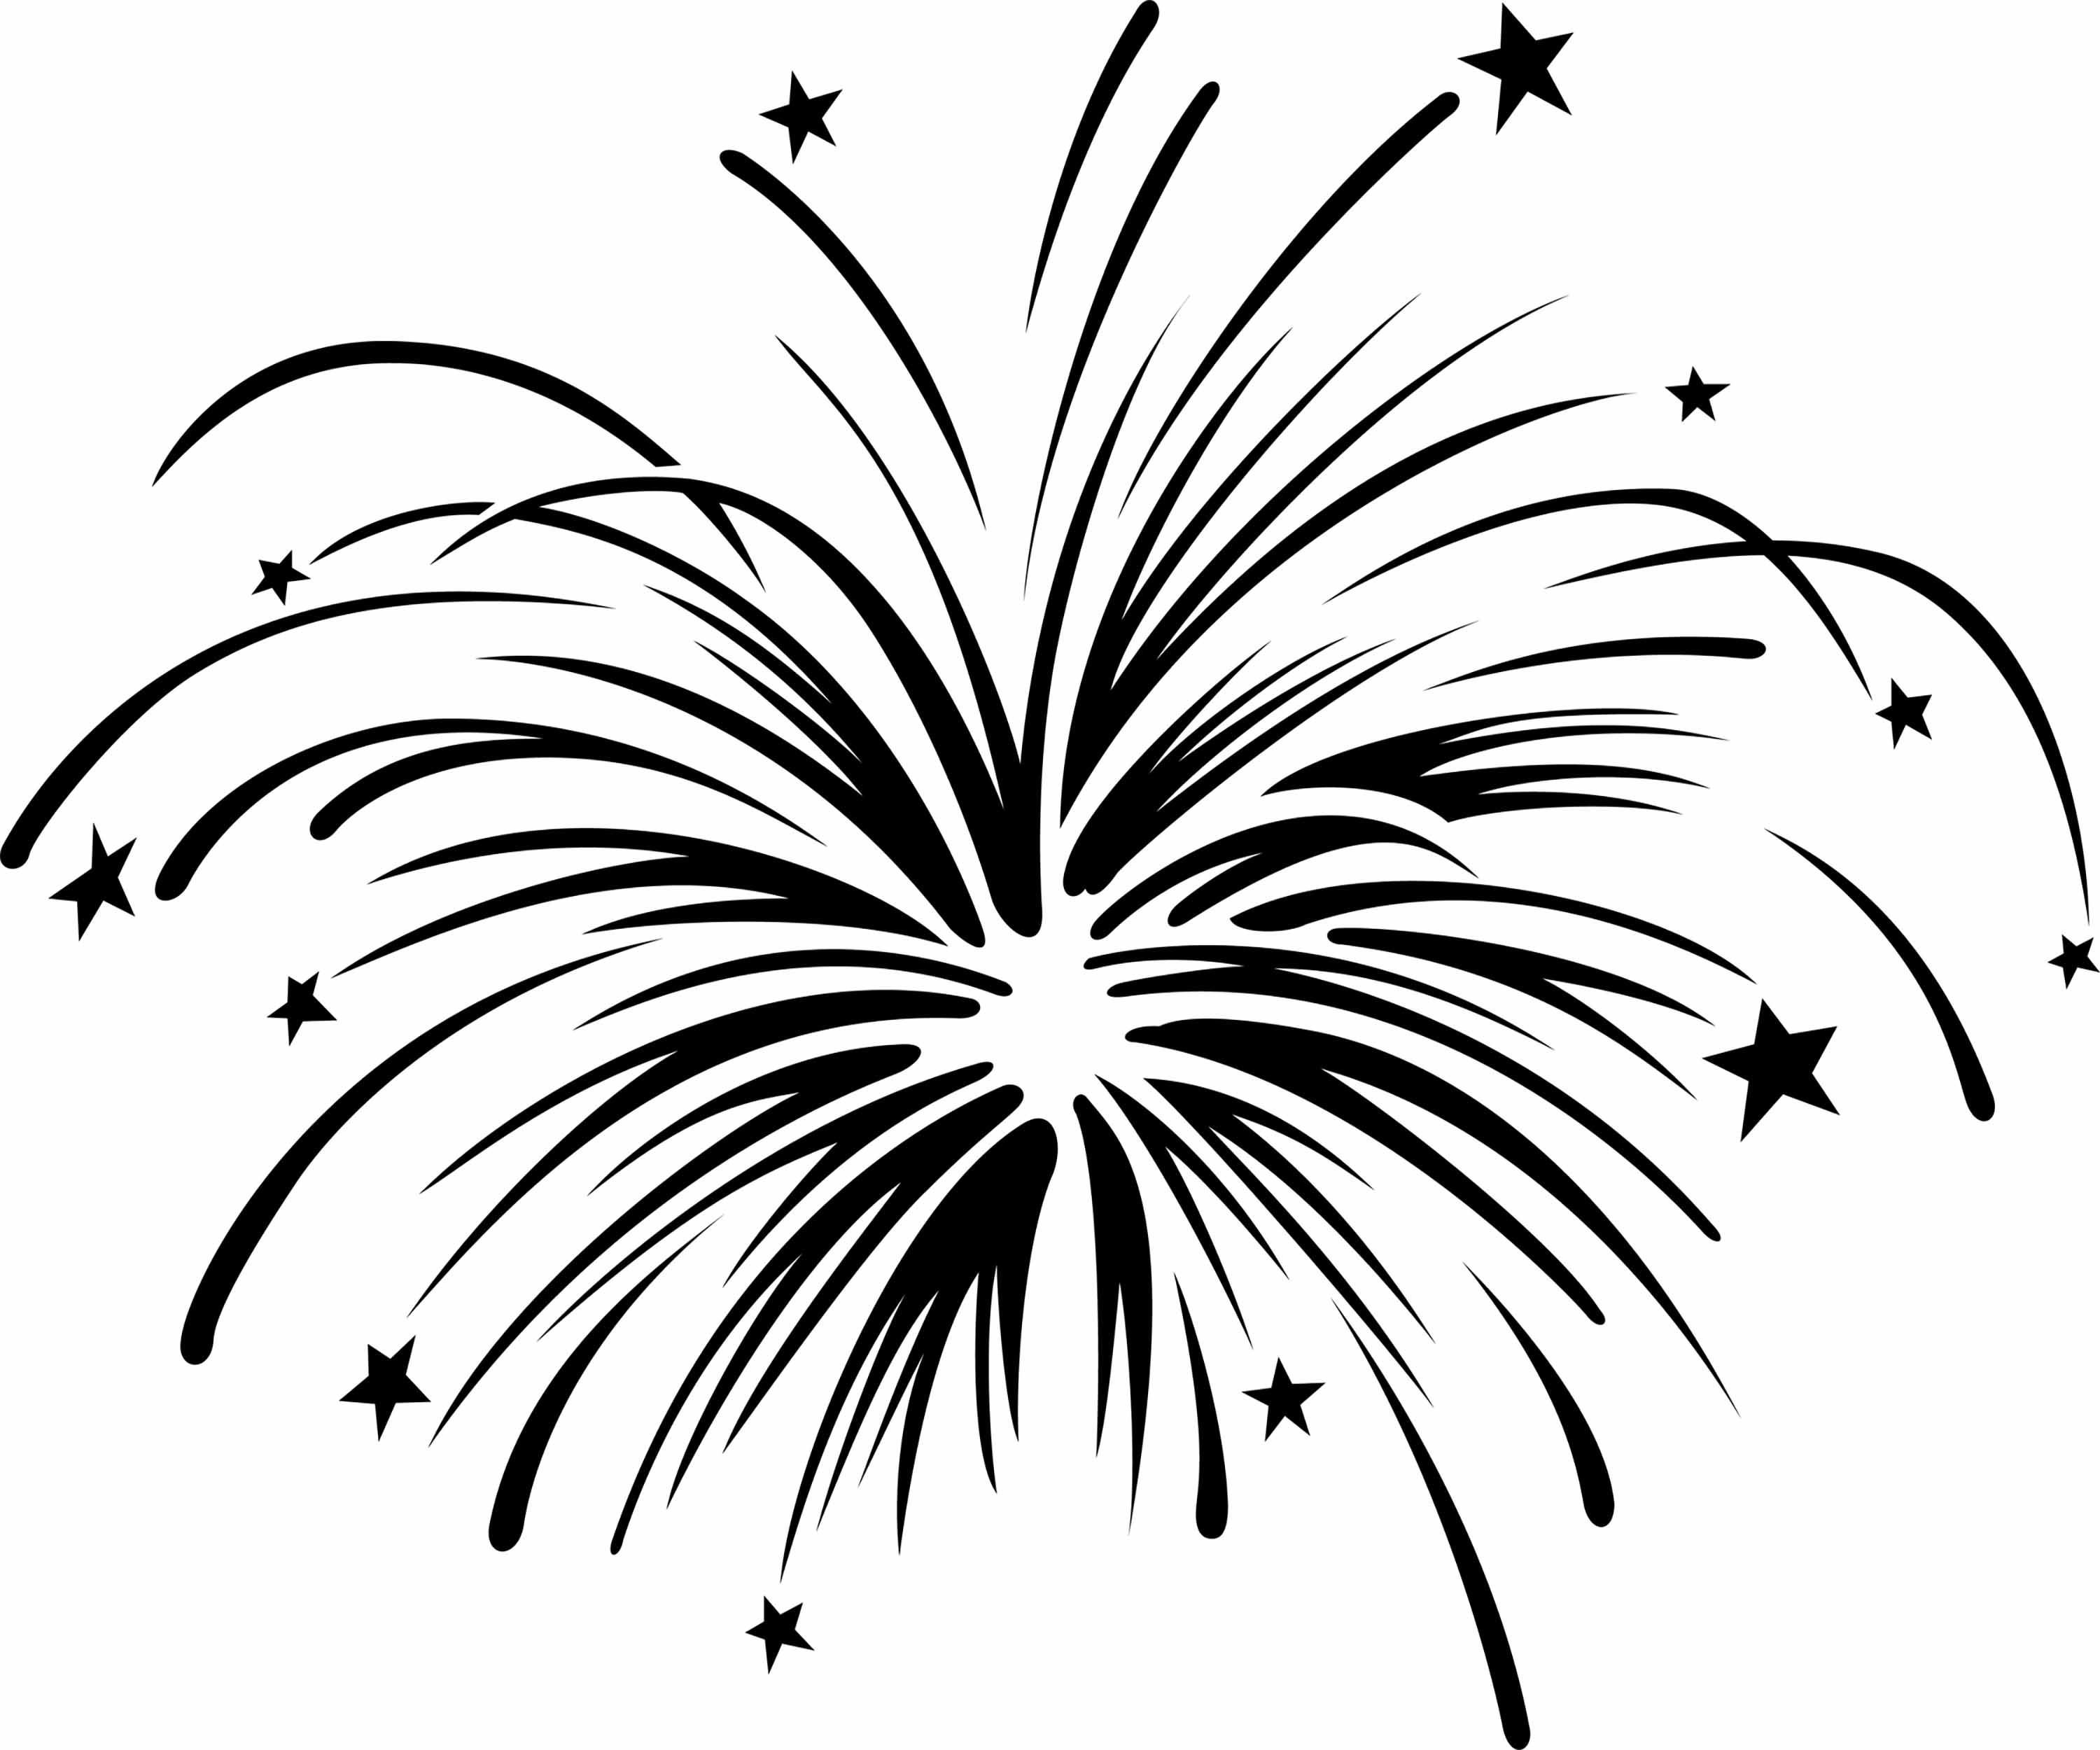 Fireworks clipart black and white graphic royalty free black-and-white-fireworks-background-clipart-2 - Wireless Innovation Ltd graphic royalty free